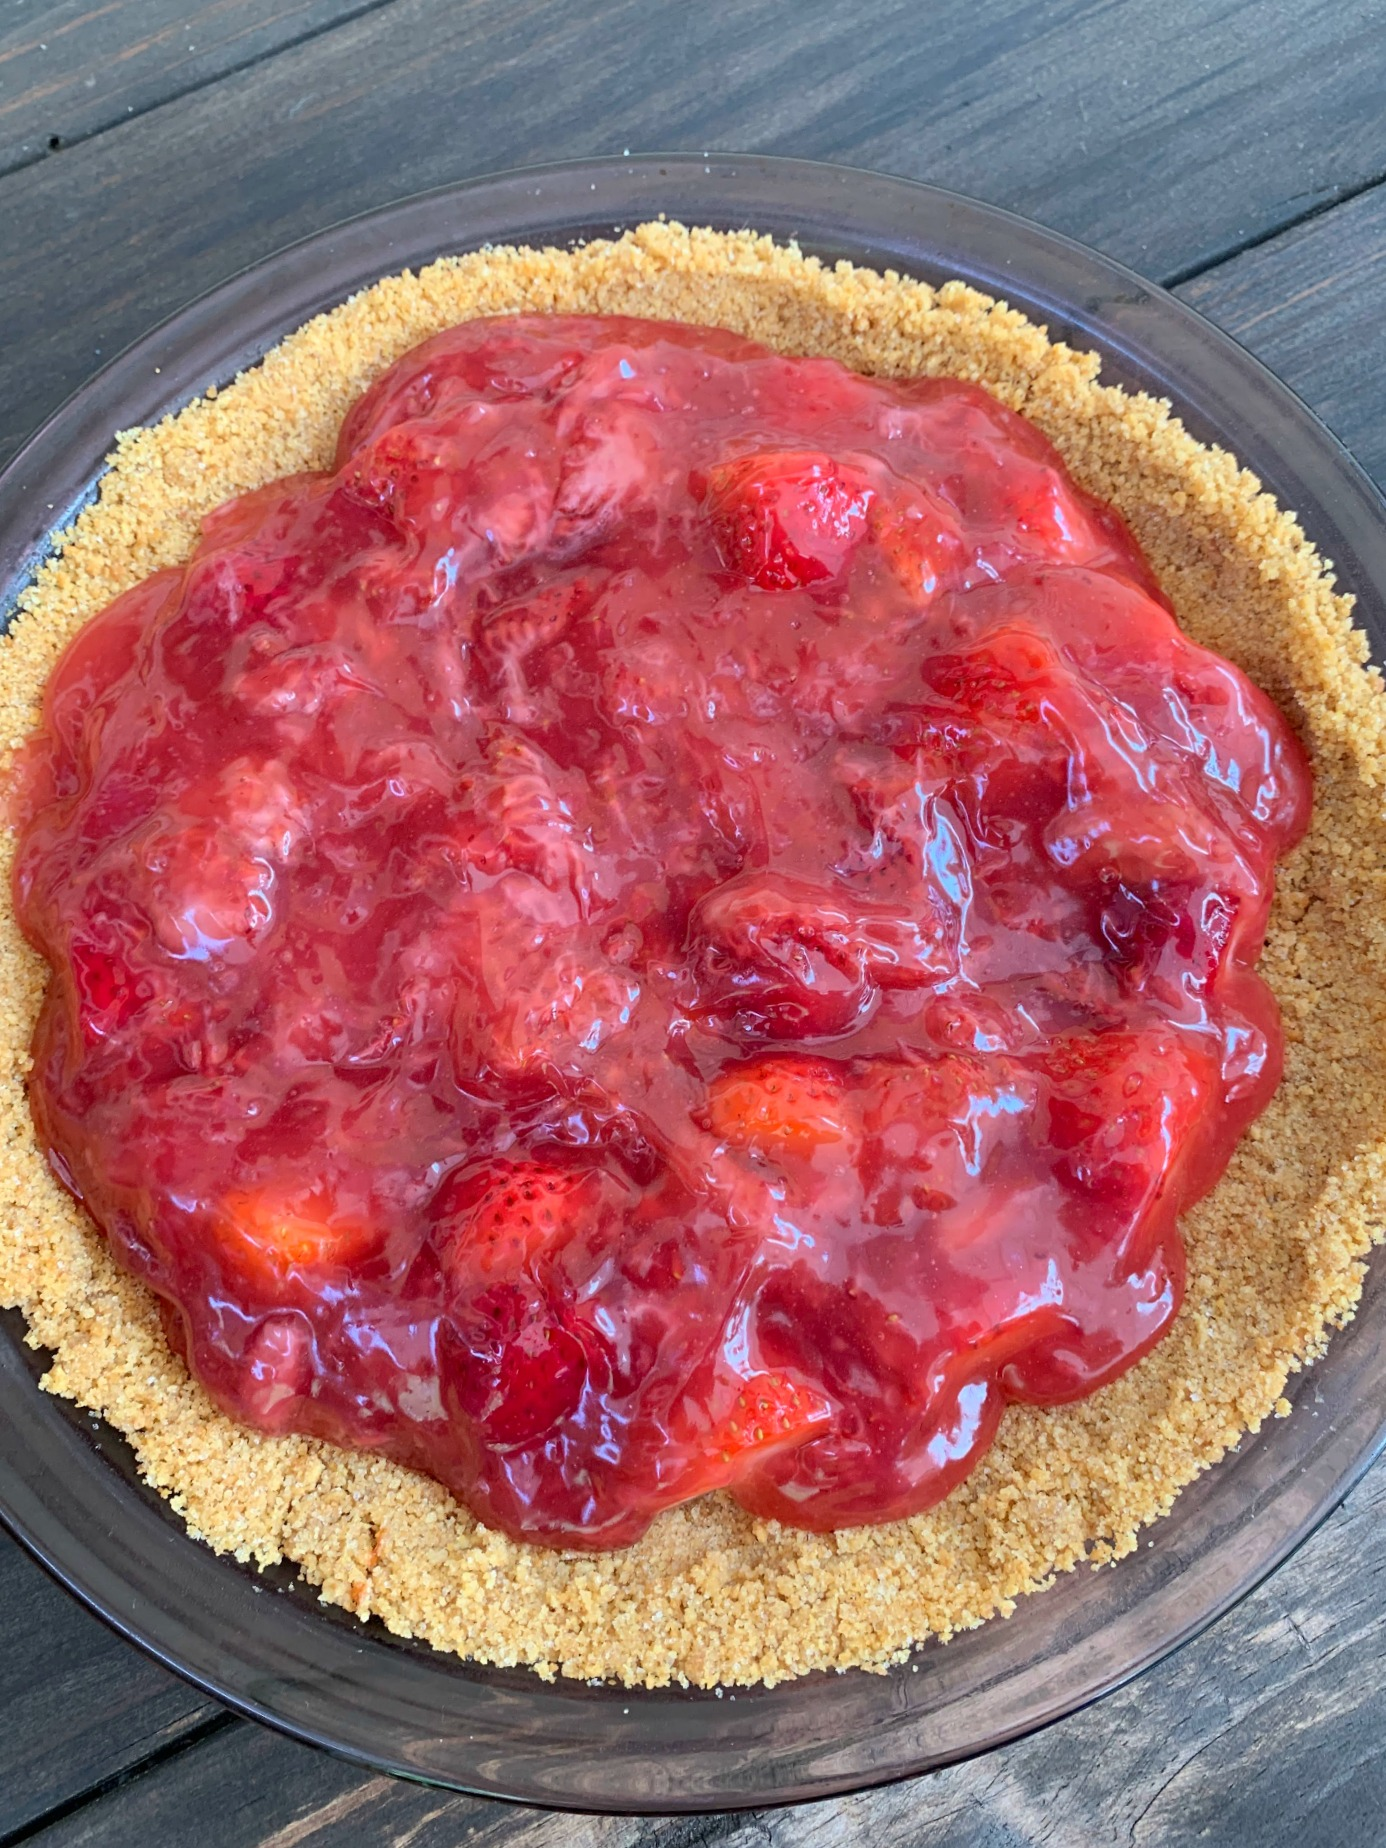 graham cracker crust filled with a homemade strawberry pie filling